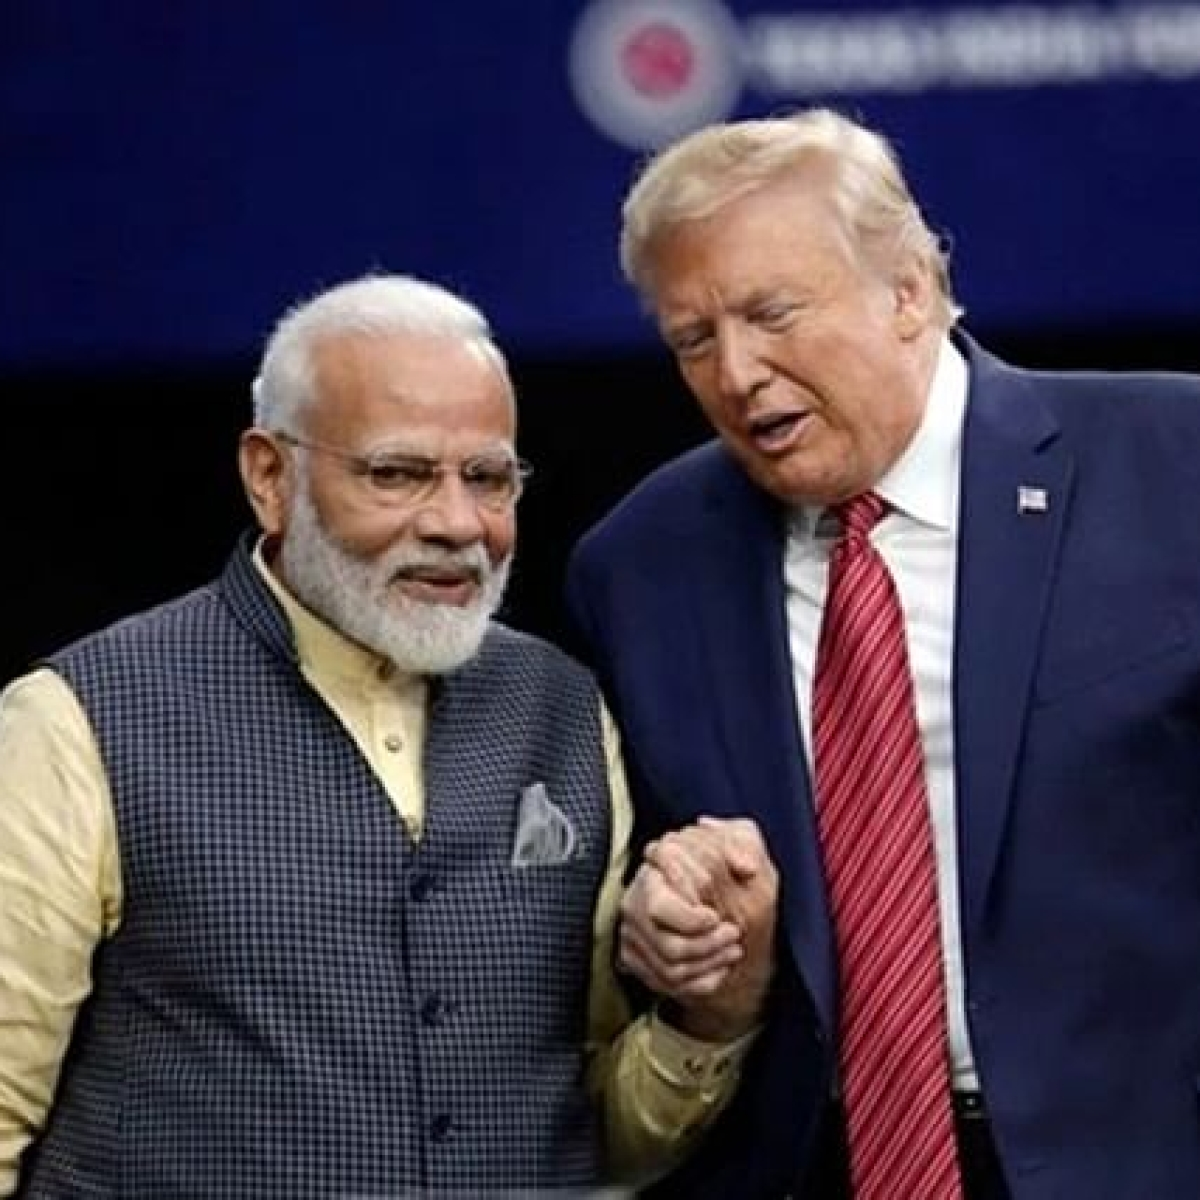 New Delhi implicitly brands Trump a liar, claims POTUS hasn't talked to PM Modi since April 4